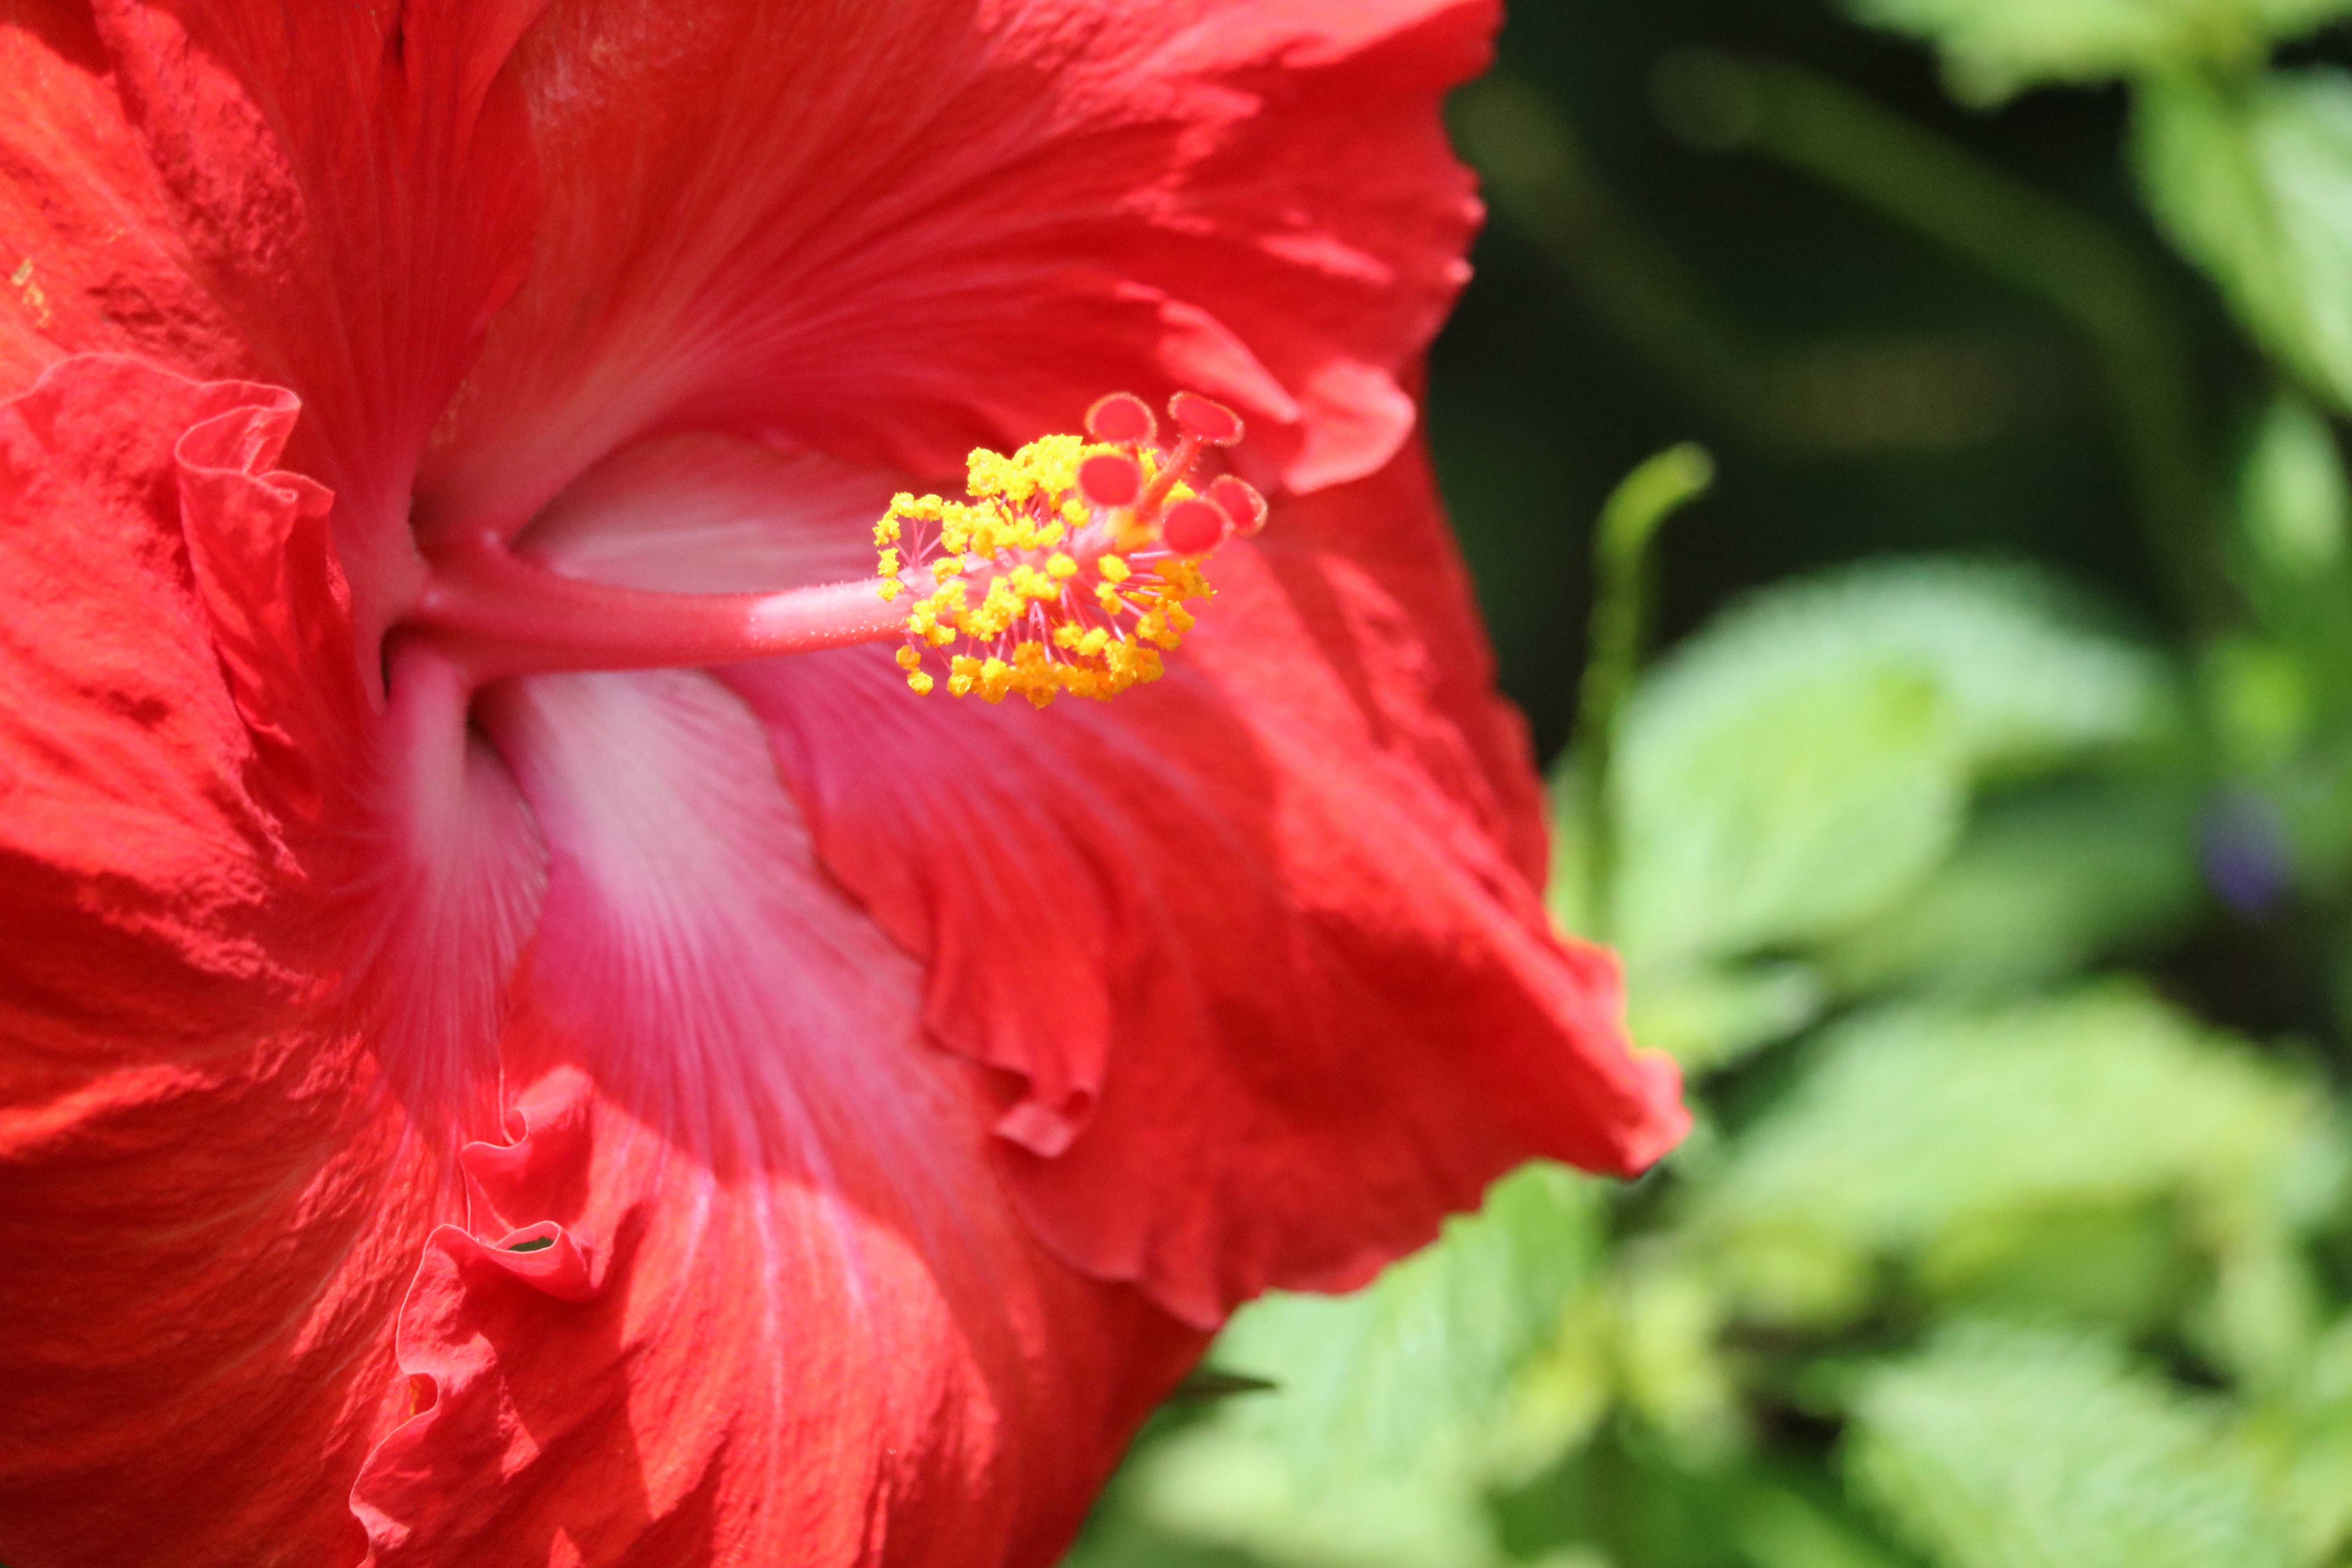 1000 beautiful hibiscus flower photos pexels free stock photos fetching more photos izmirmasajfo